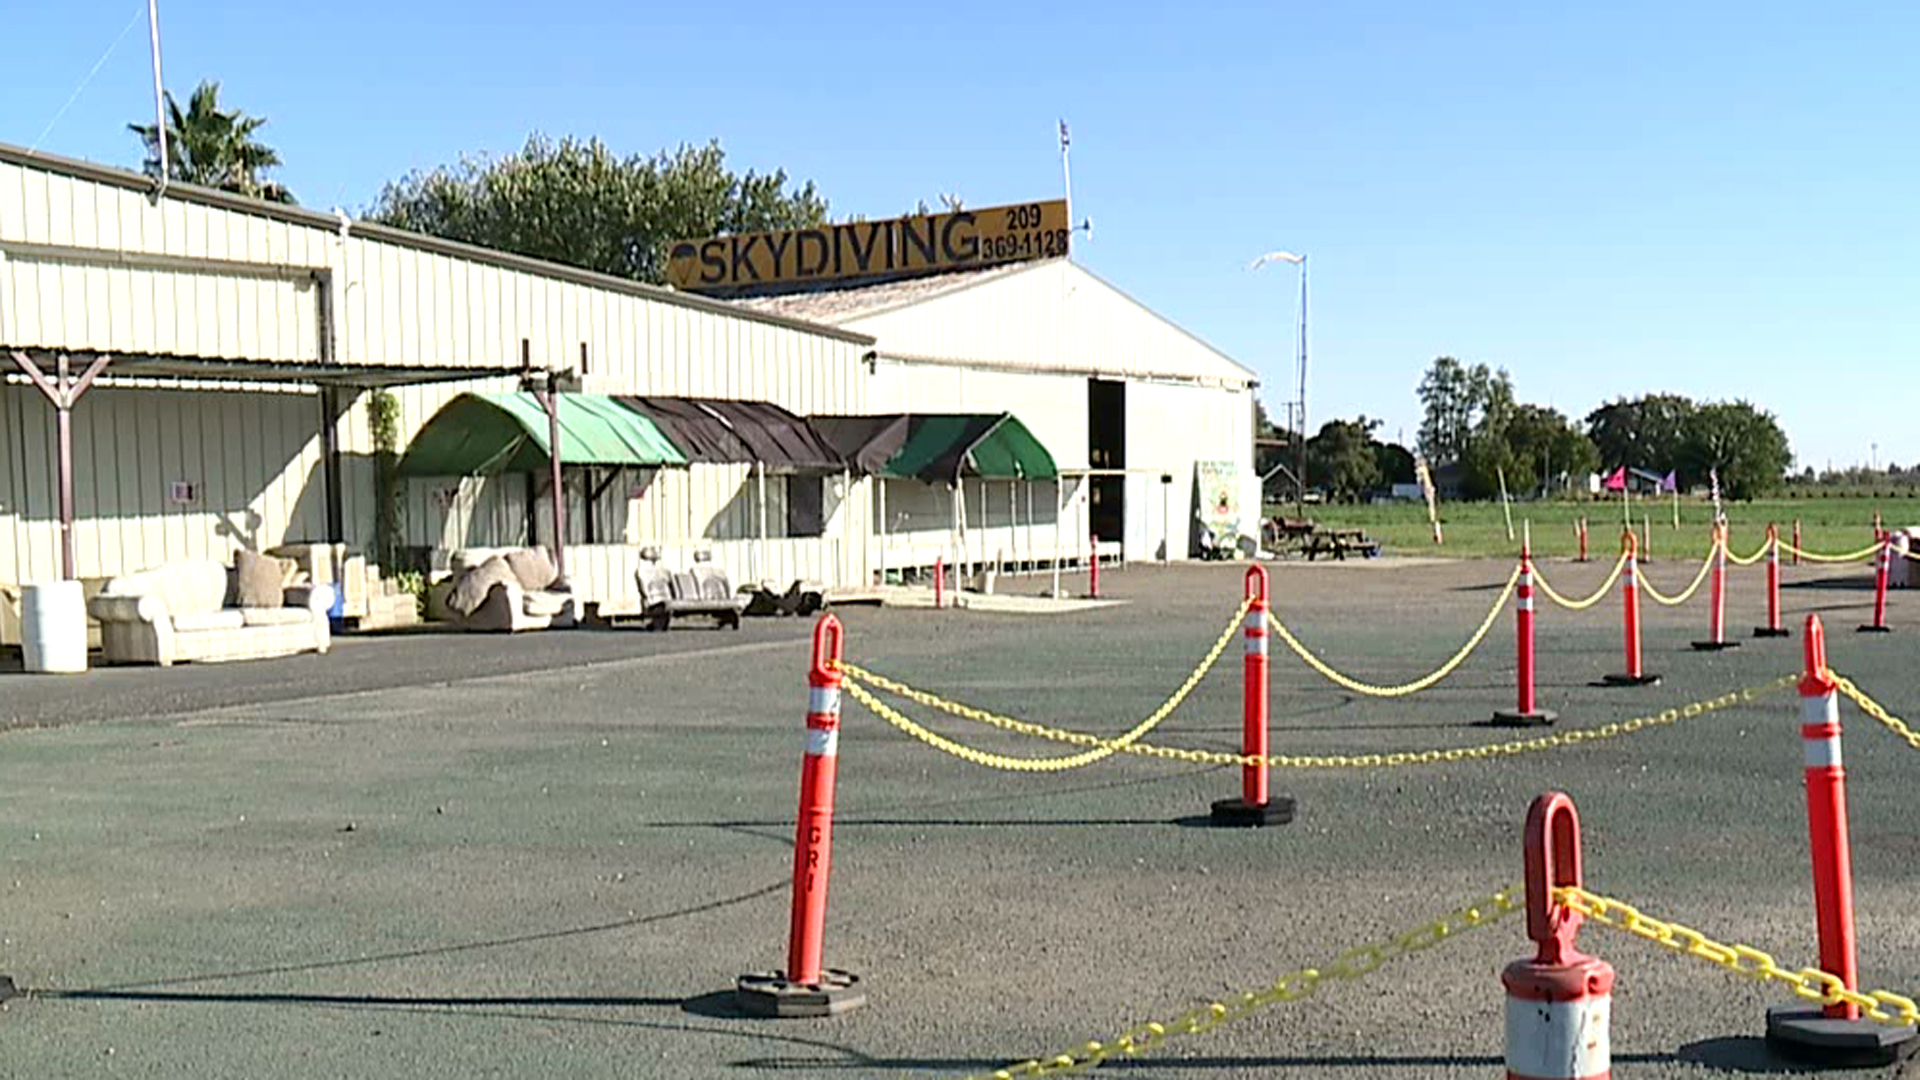 The Lodi Skydiving Center is seen after a woman died when her parachute failed to deploy during a jump on Oct. 14, 2018. (Credit: KTXL)